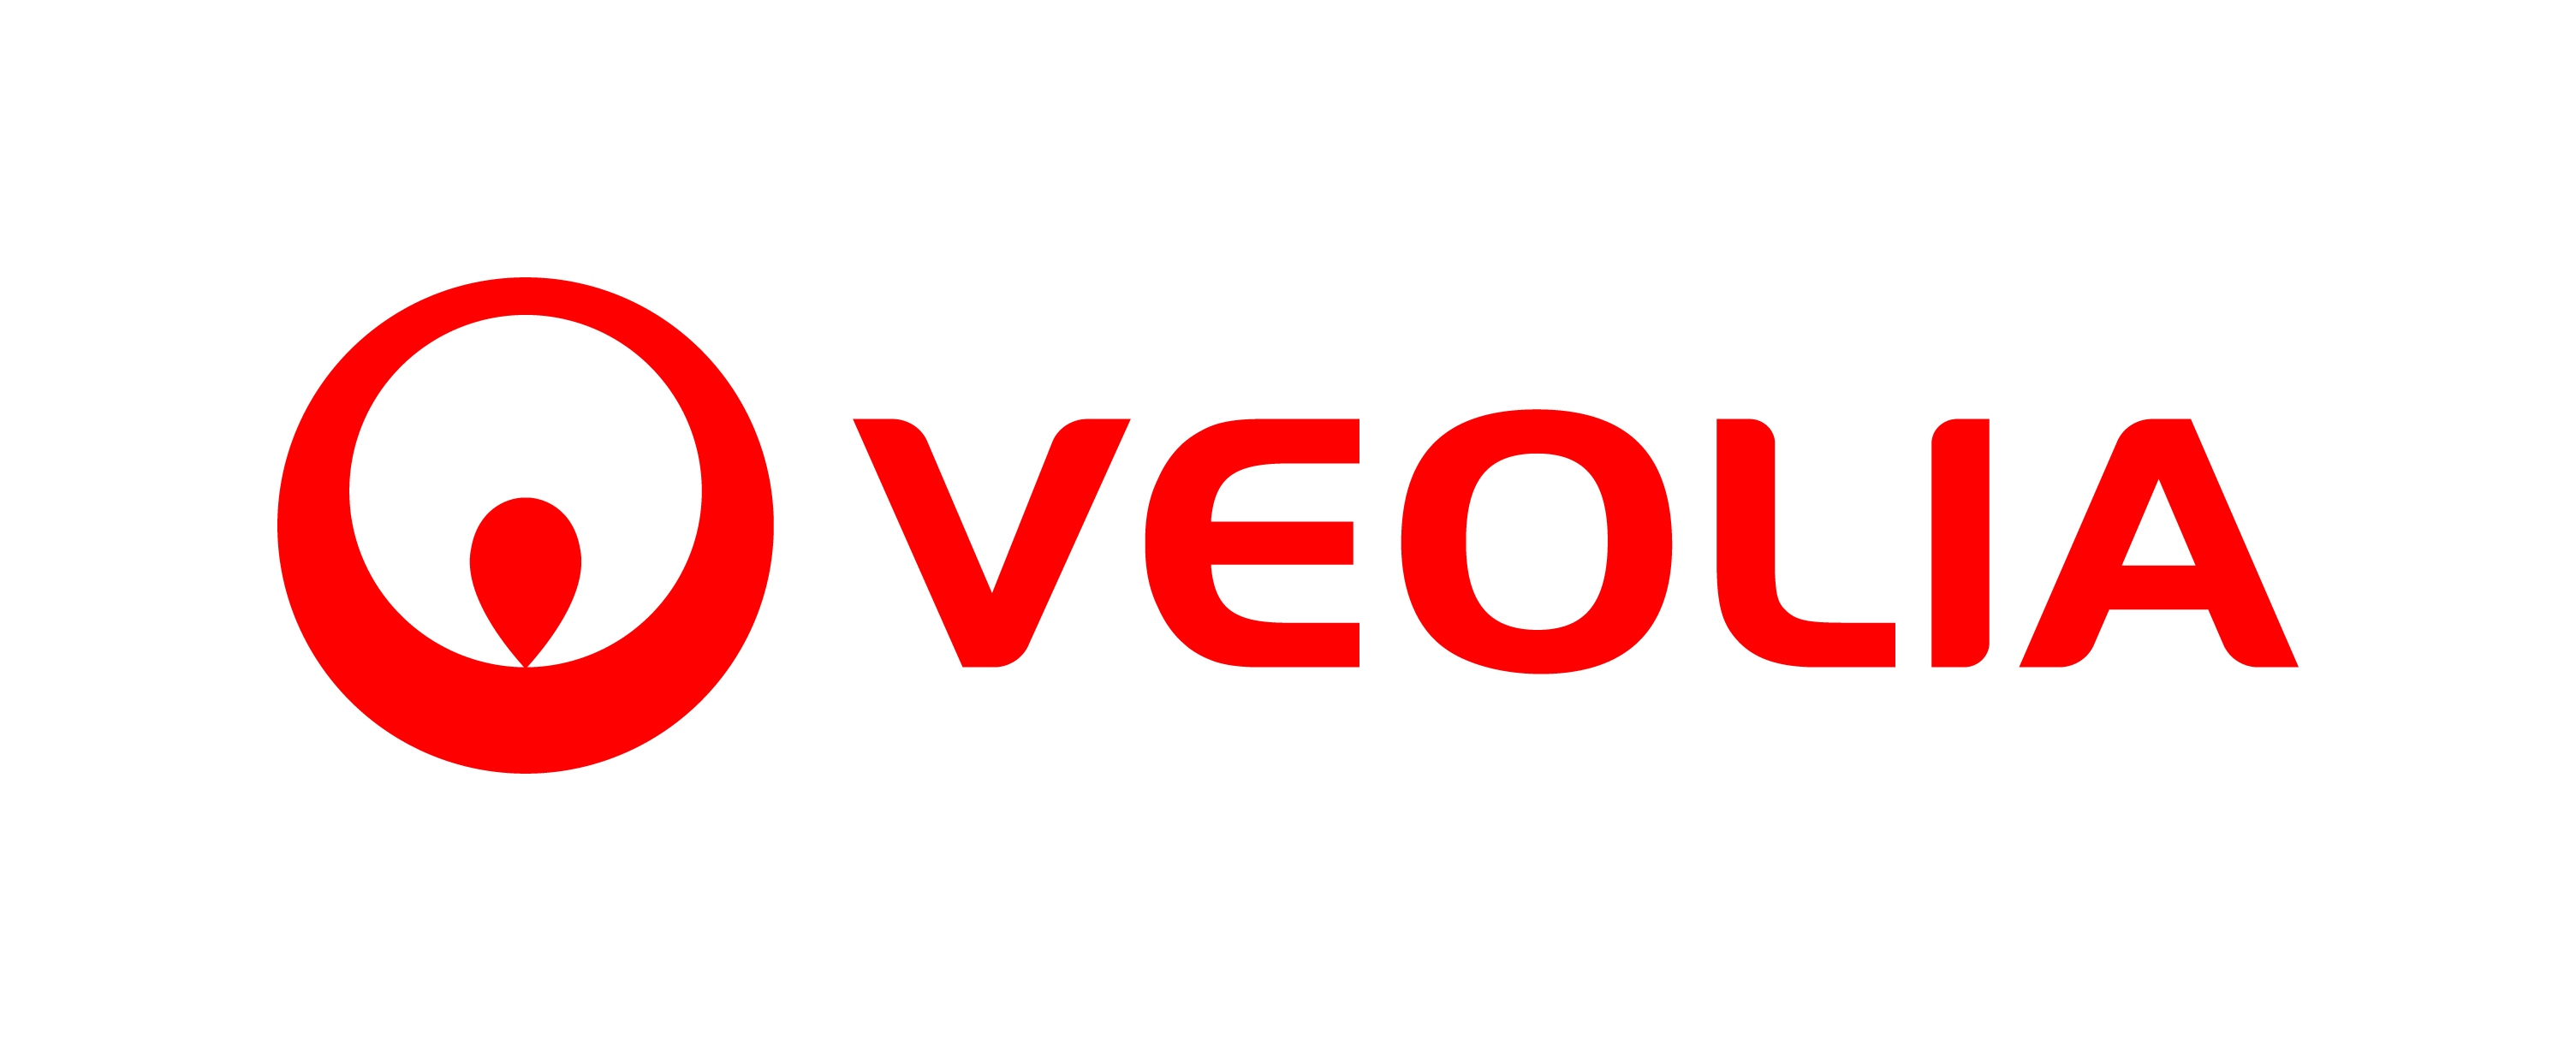 Veolia Energie, a.s.